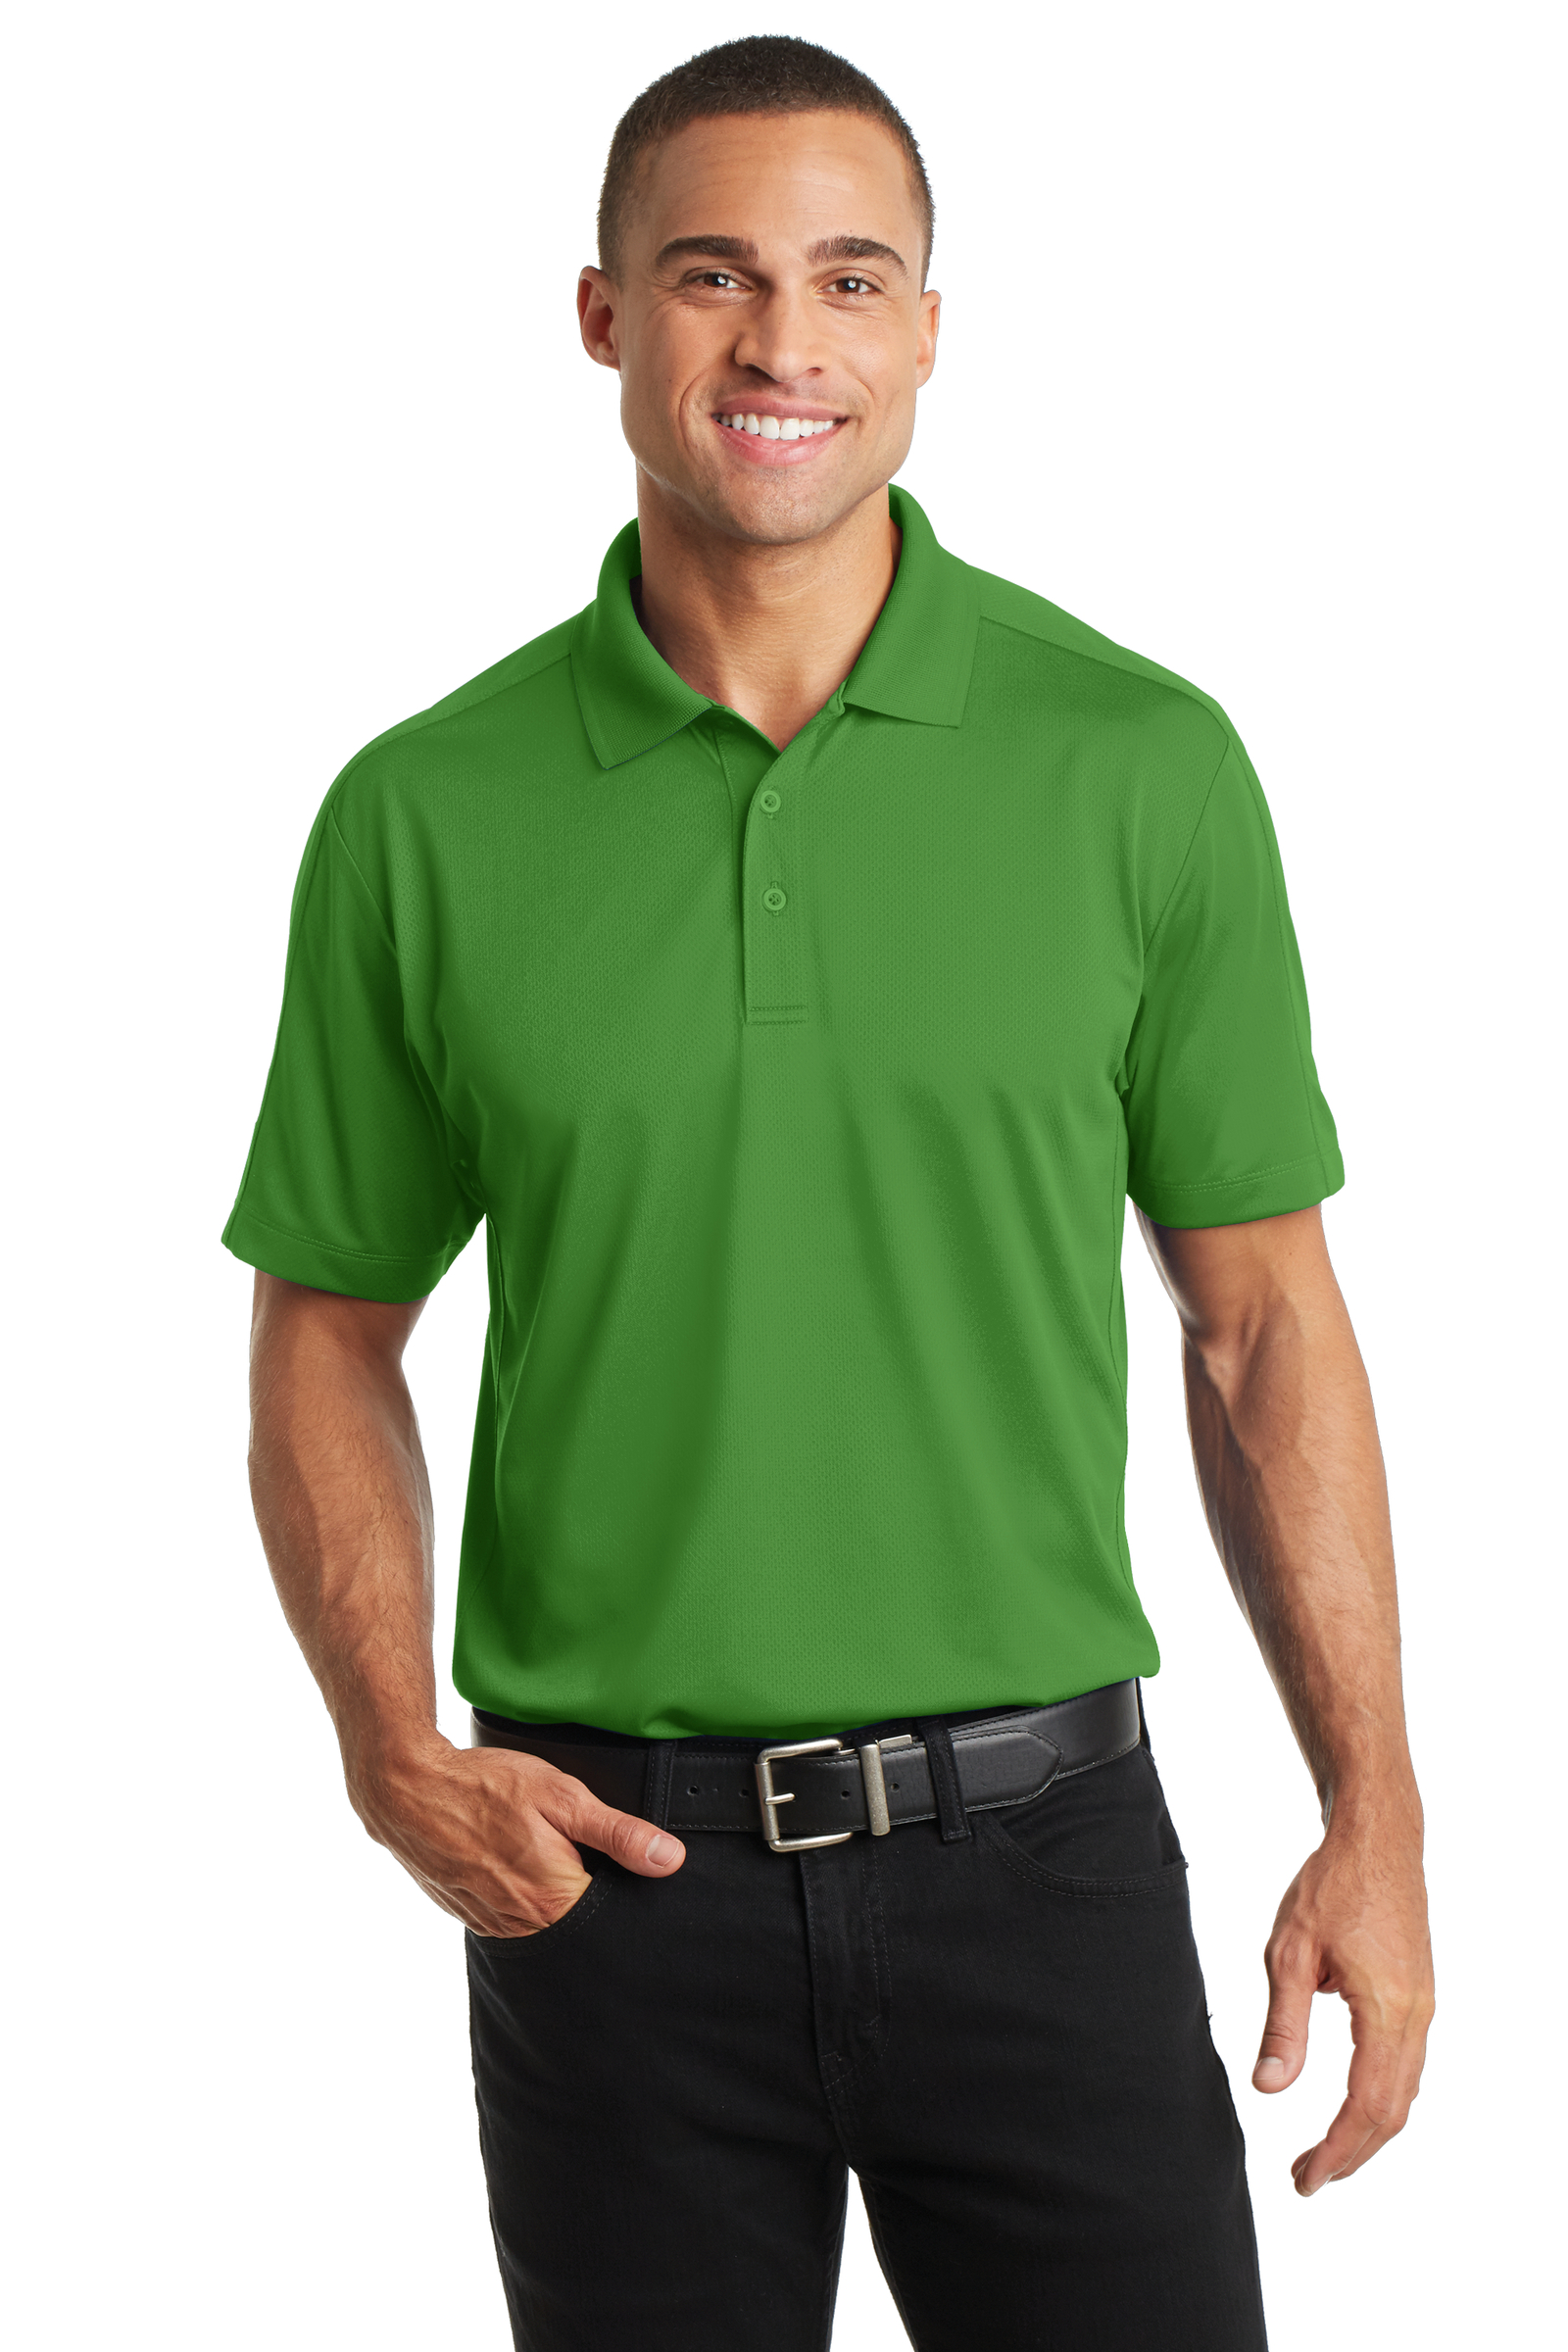 Port Authority Embroidered Men's Diamond Jacquard Polo